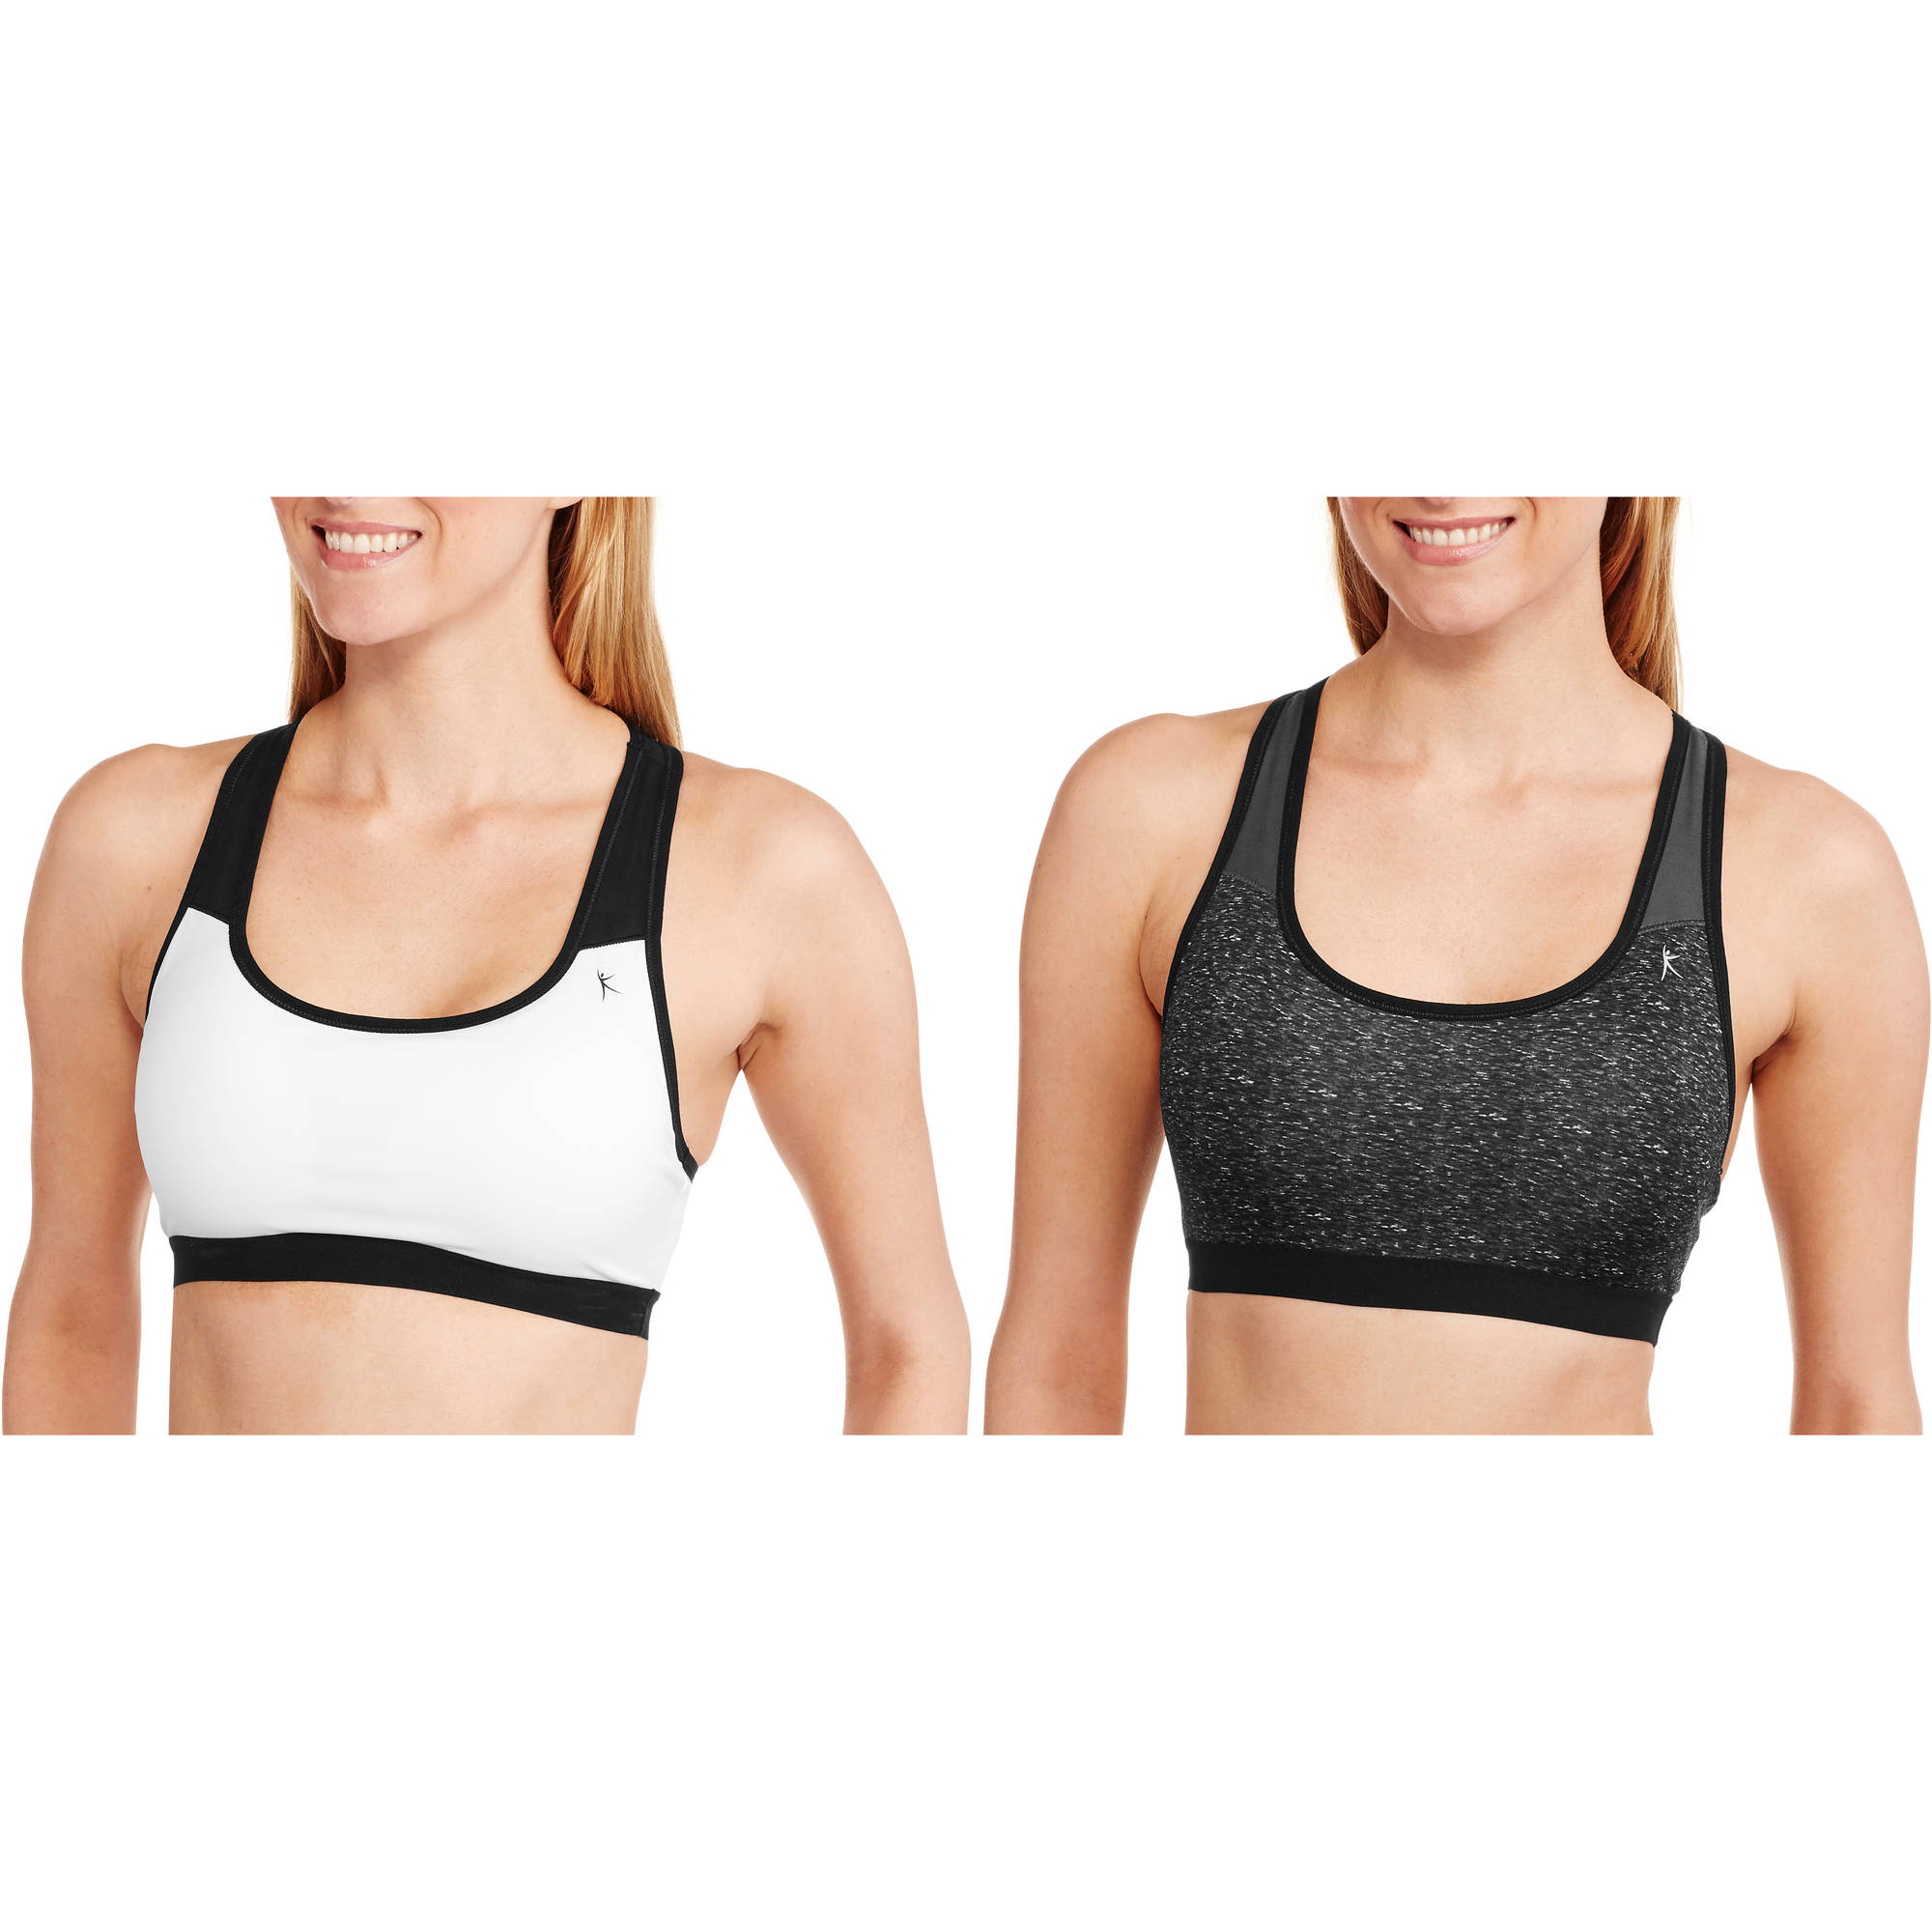 Danskin Now Removeable Foam Cups Sports Bra, Medium Impact, 2 Pack